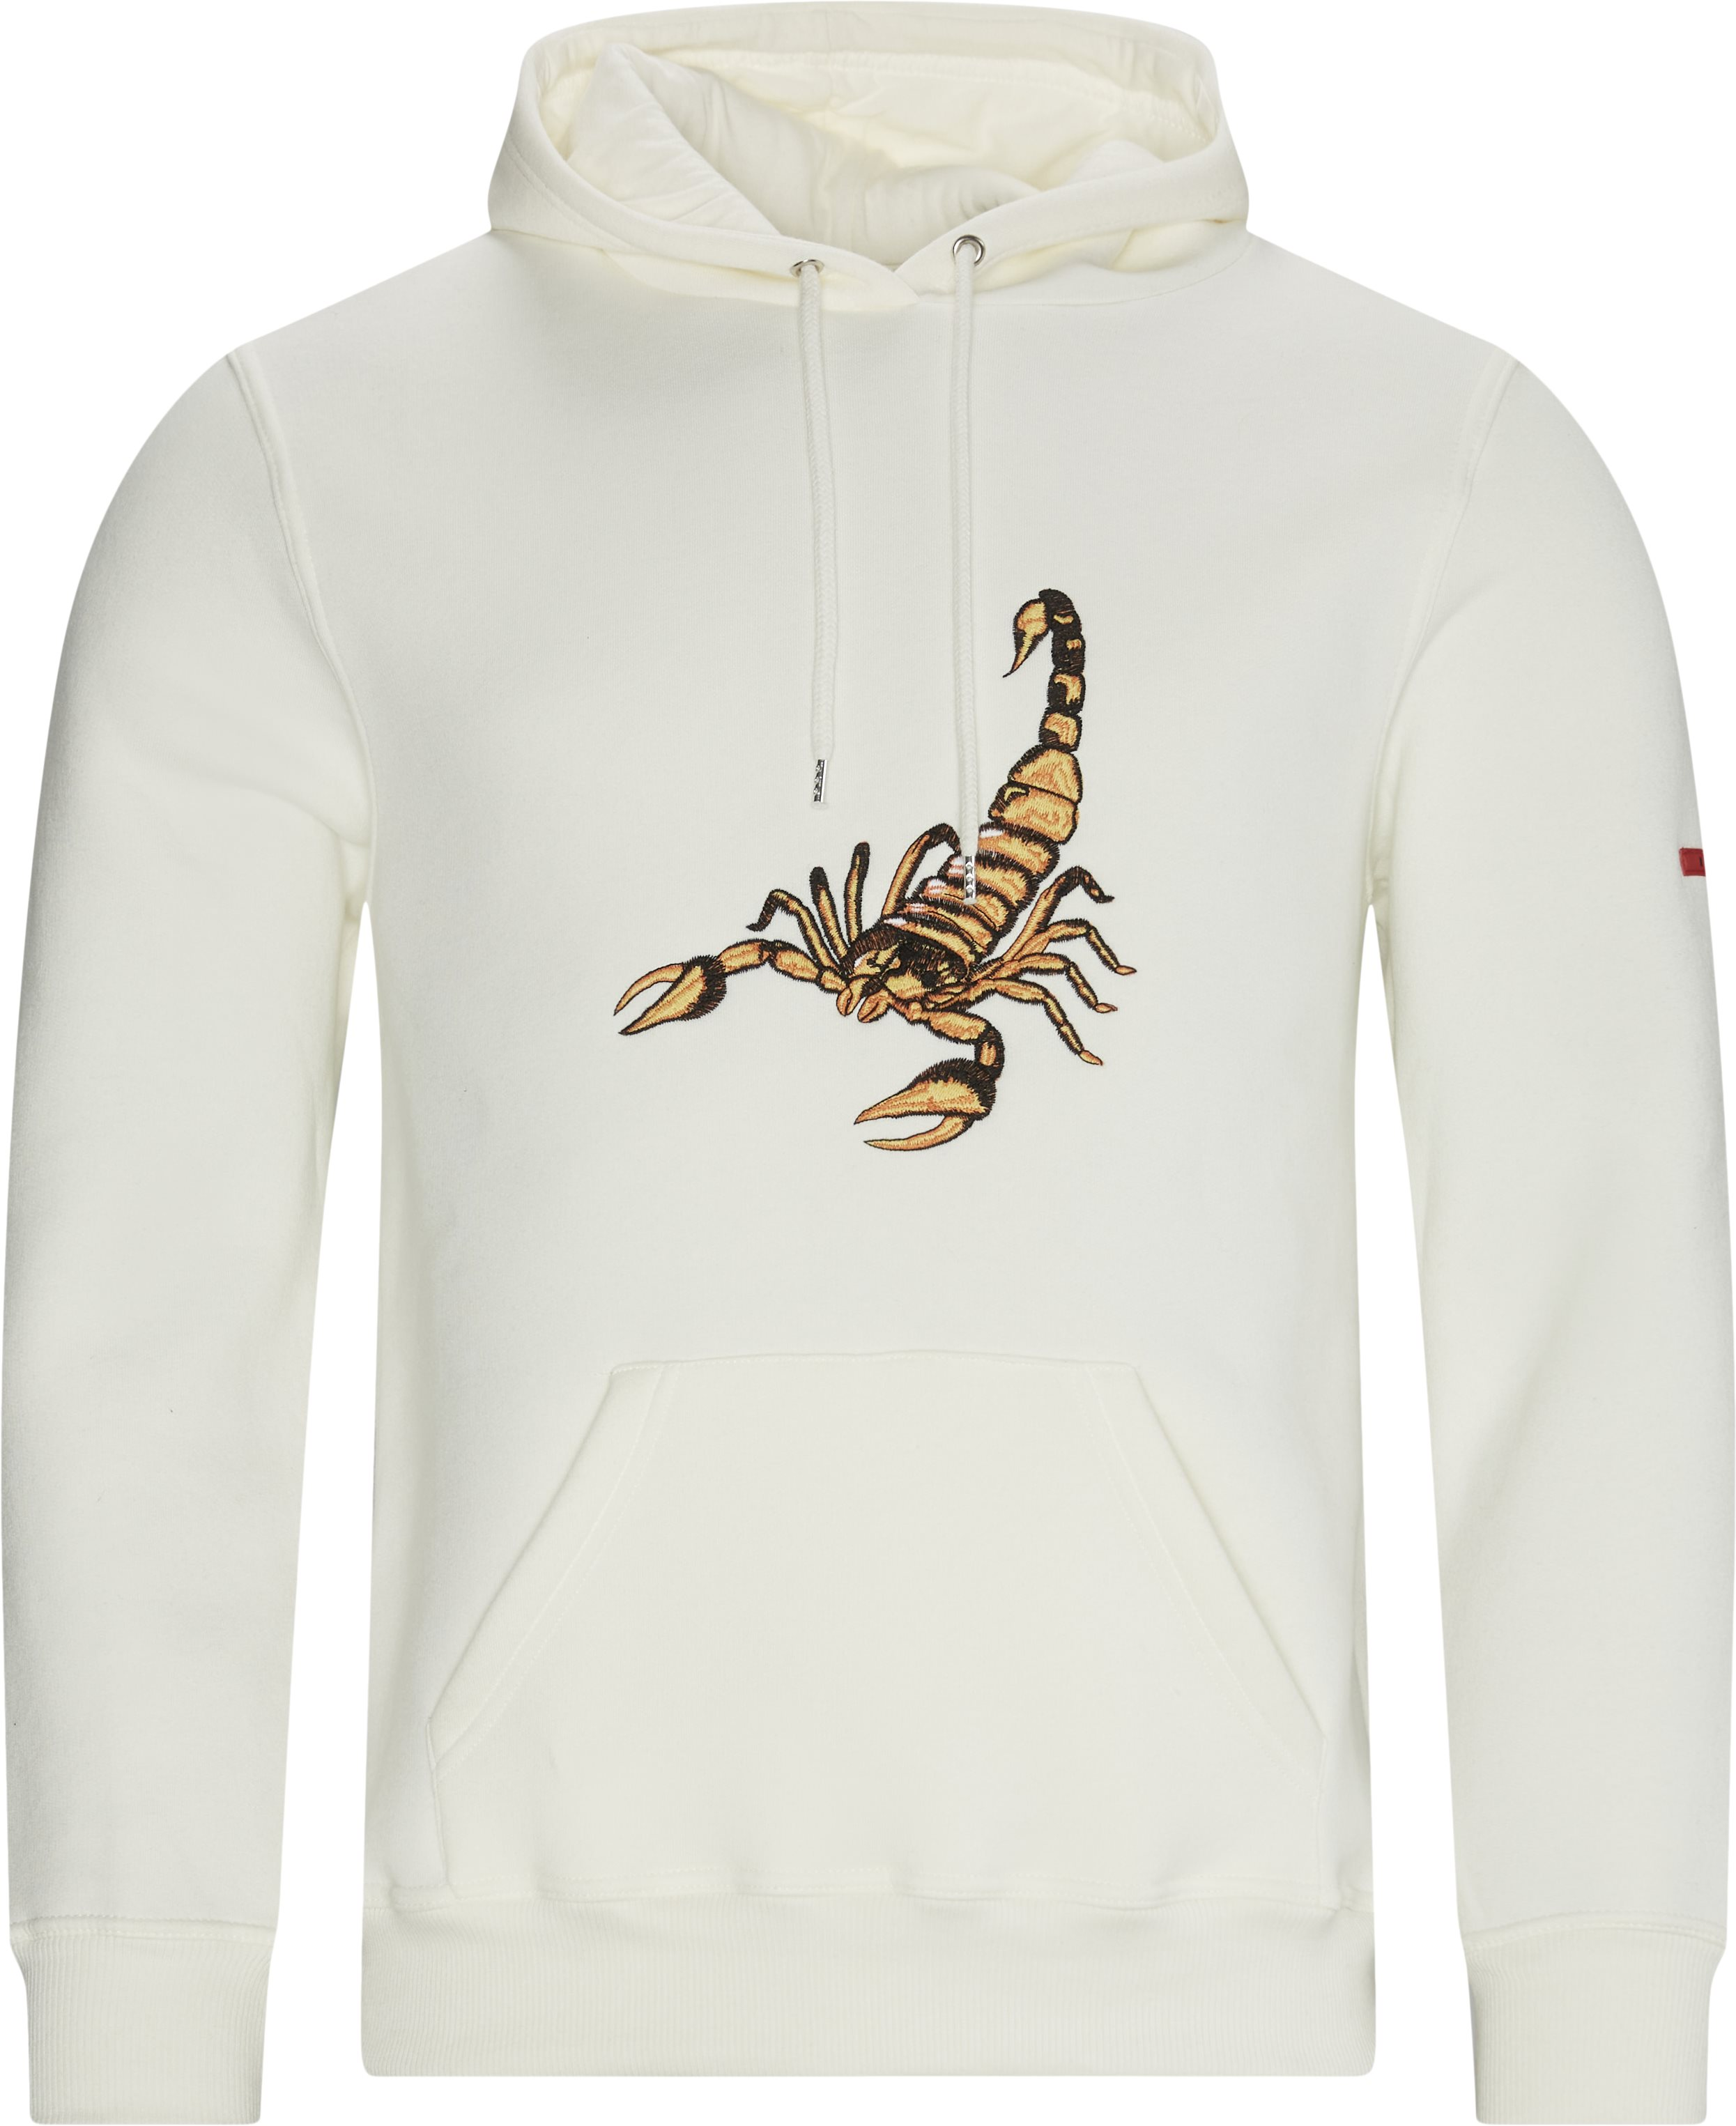 Scorpion Hoodie - Sweatshirts - Regular - Sand